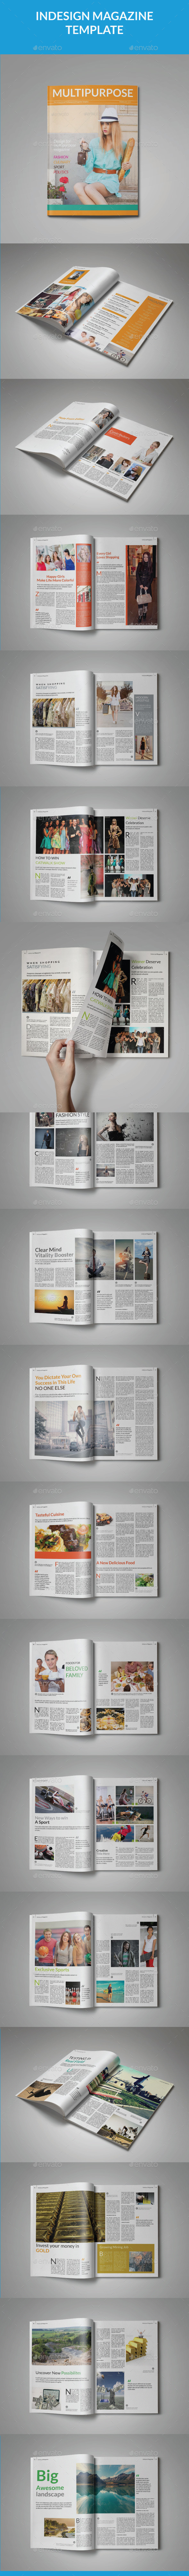 A5 Universal Magazine Template - Magazines Print Templates